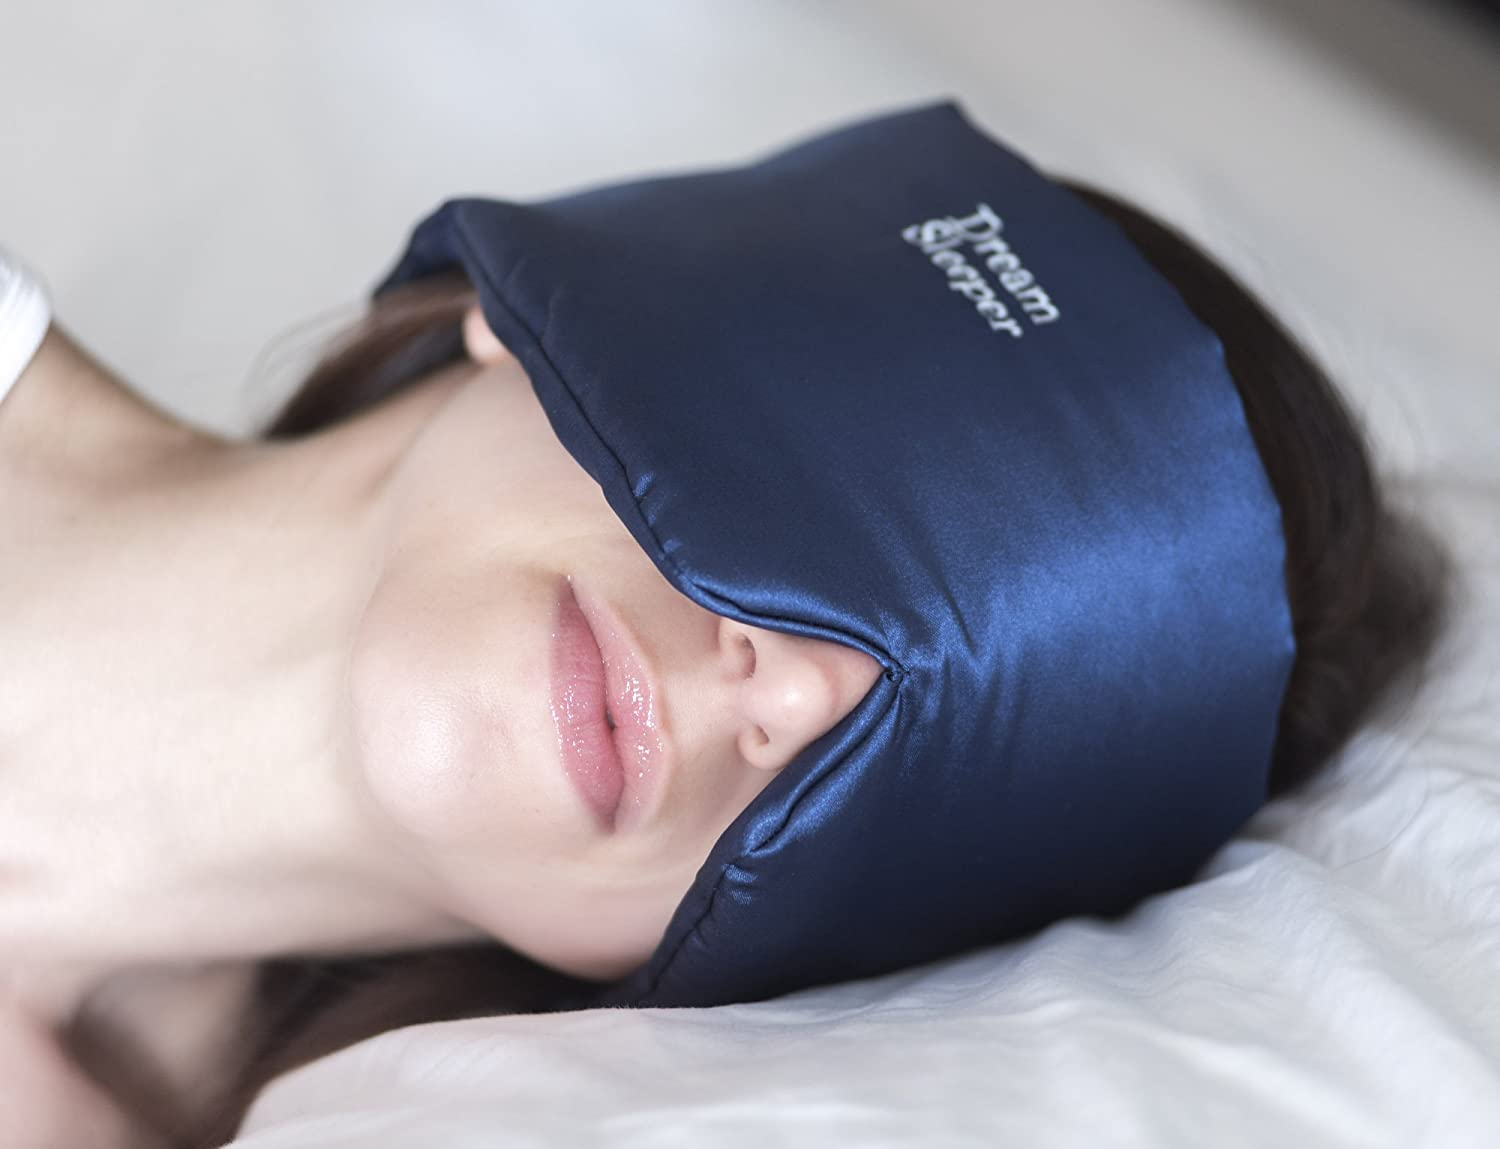 #1 Rated - Dream Sleeper ® Sleep Mask Blocks Out 100% Of All Light. Master Your Sleep. Velcro Enclosure Does Not Fall Off When Sleeping.